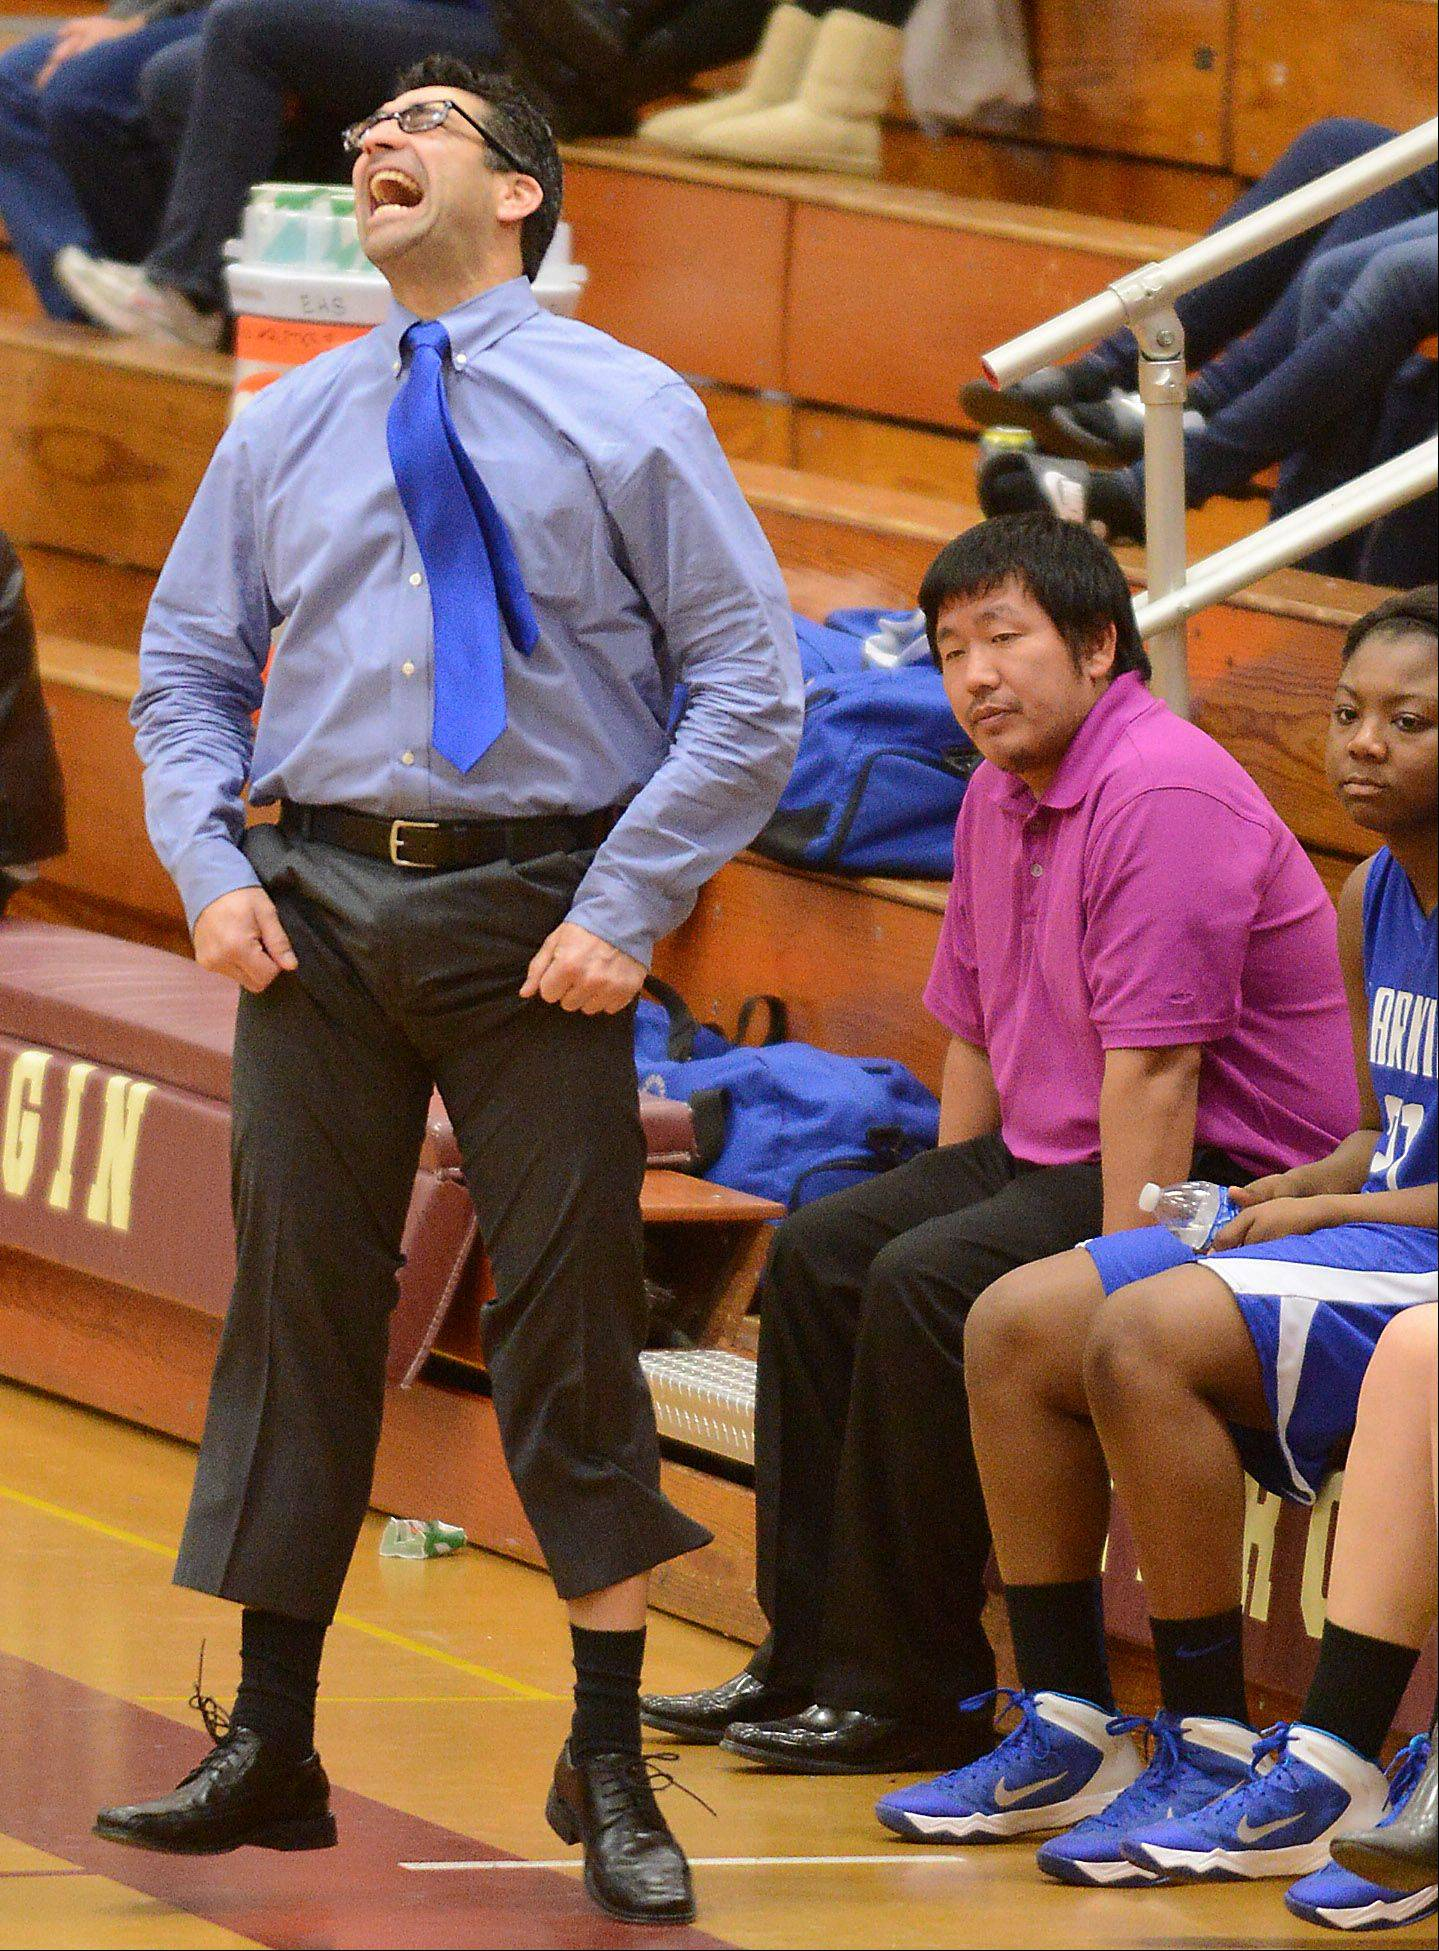 Larkin coach Ruben Flores reacts to the action on floor during Friday's game in Elgin.